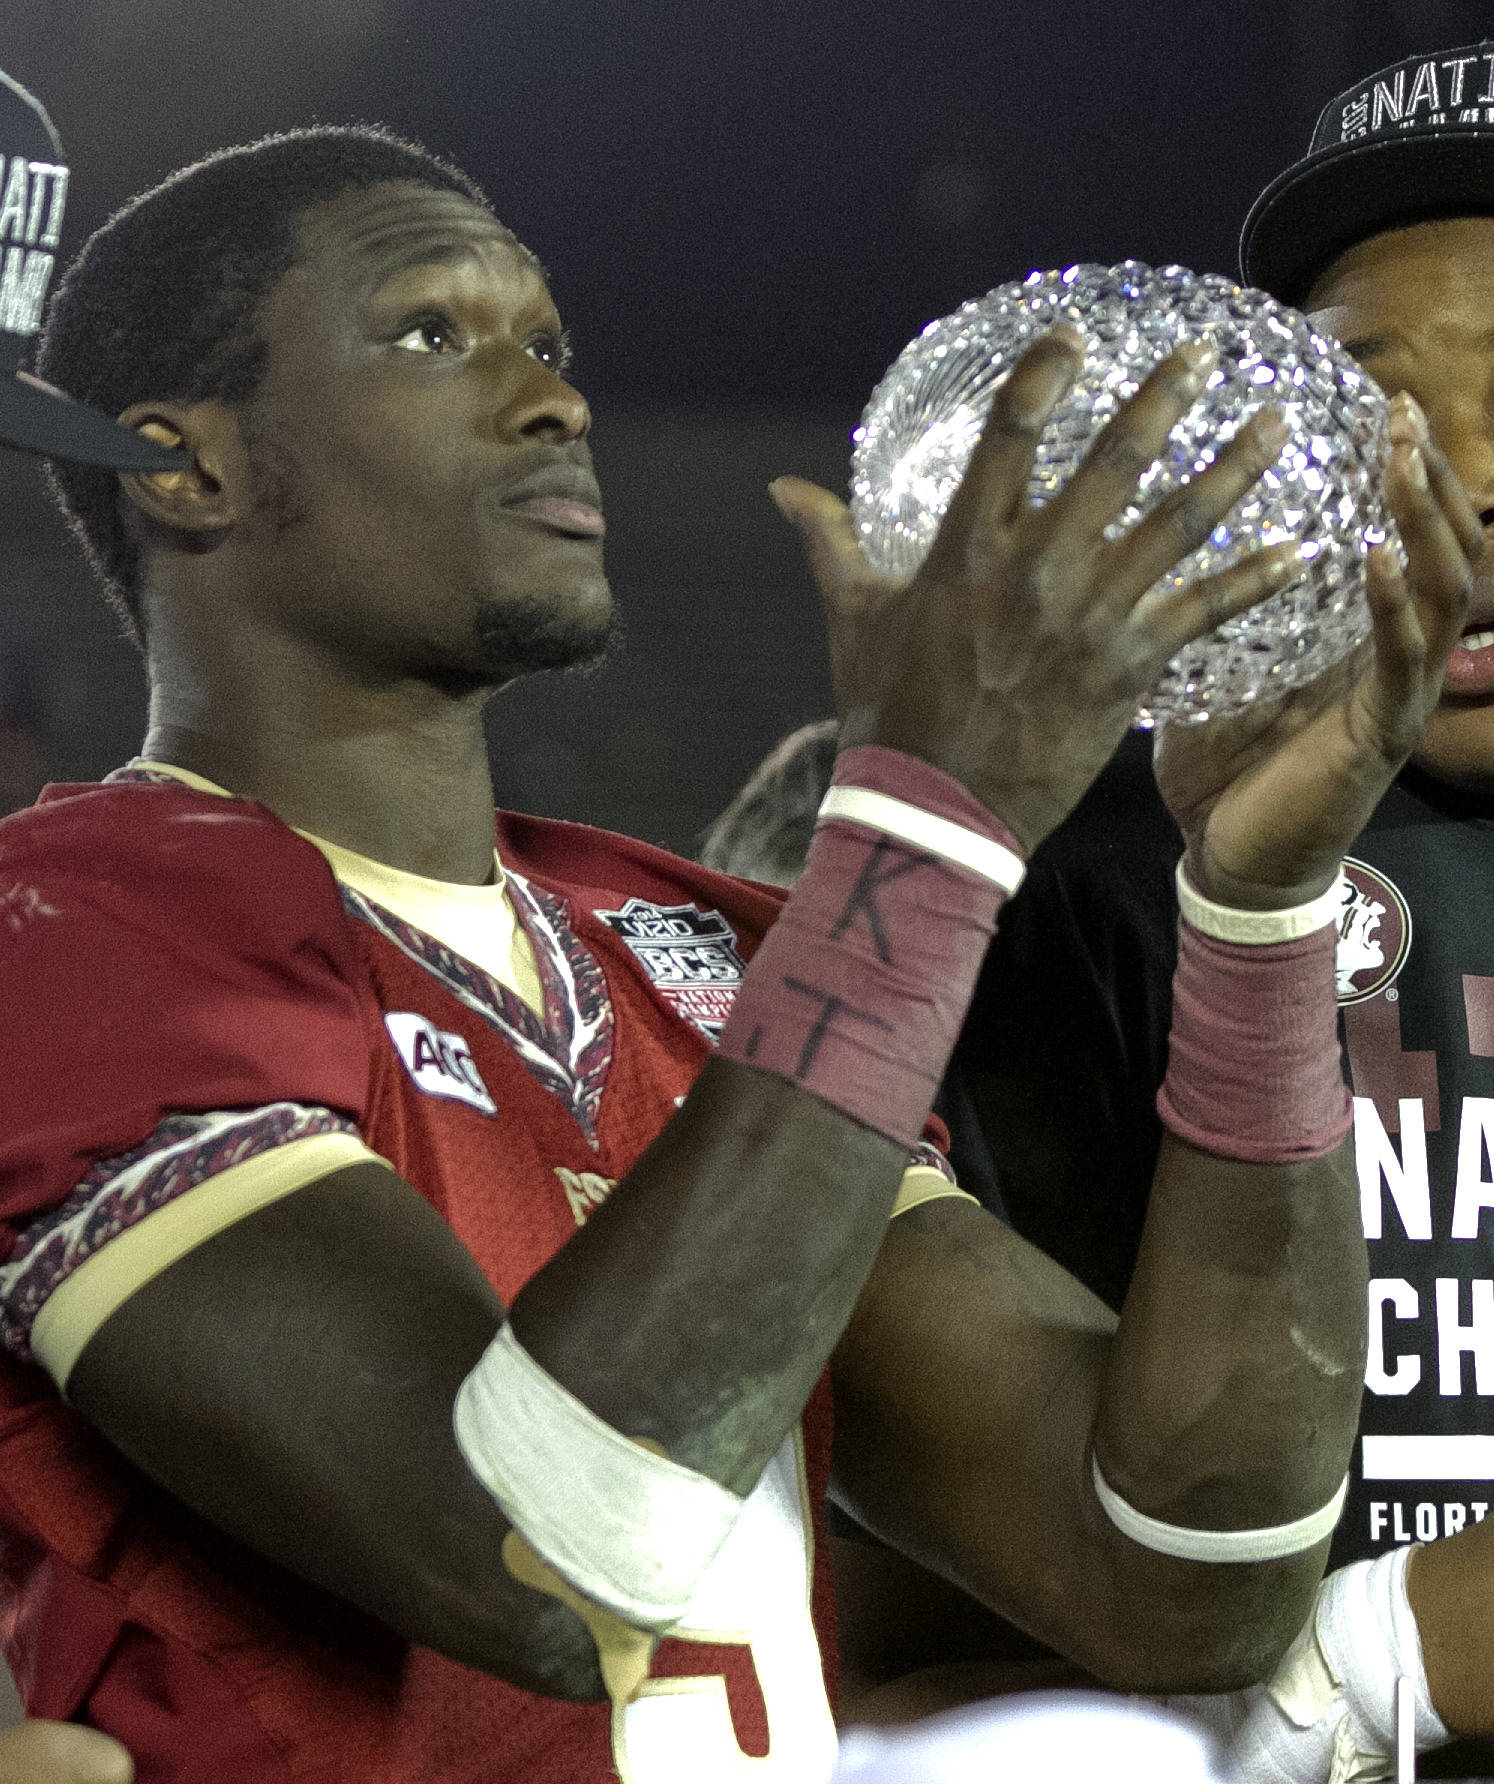 Karlos Williams (9) Giving praise for what he received, BCS Championship, FSU vs Auburn, Rose Bowl, Pasadena, CA,  1-06-14,  (Photo by Steve Musco)